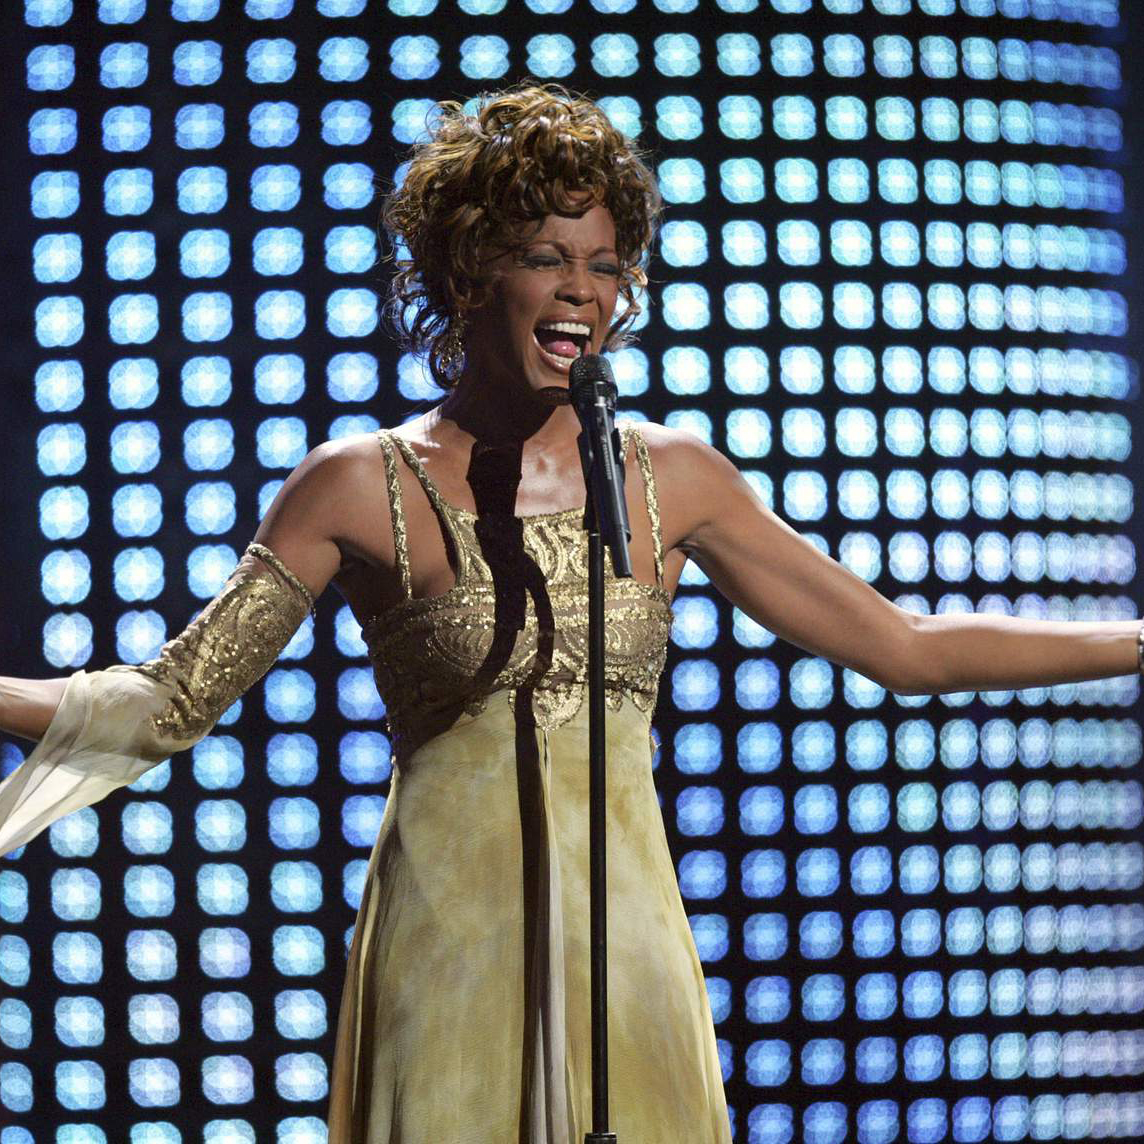 The holographic Whitney Houston tour will start in England next week. U.S. dates are expected to follow. >  #KPRC2